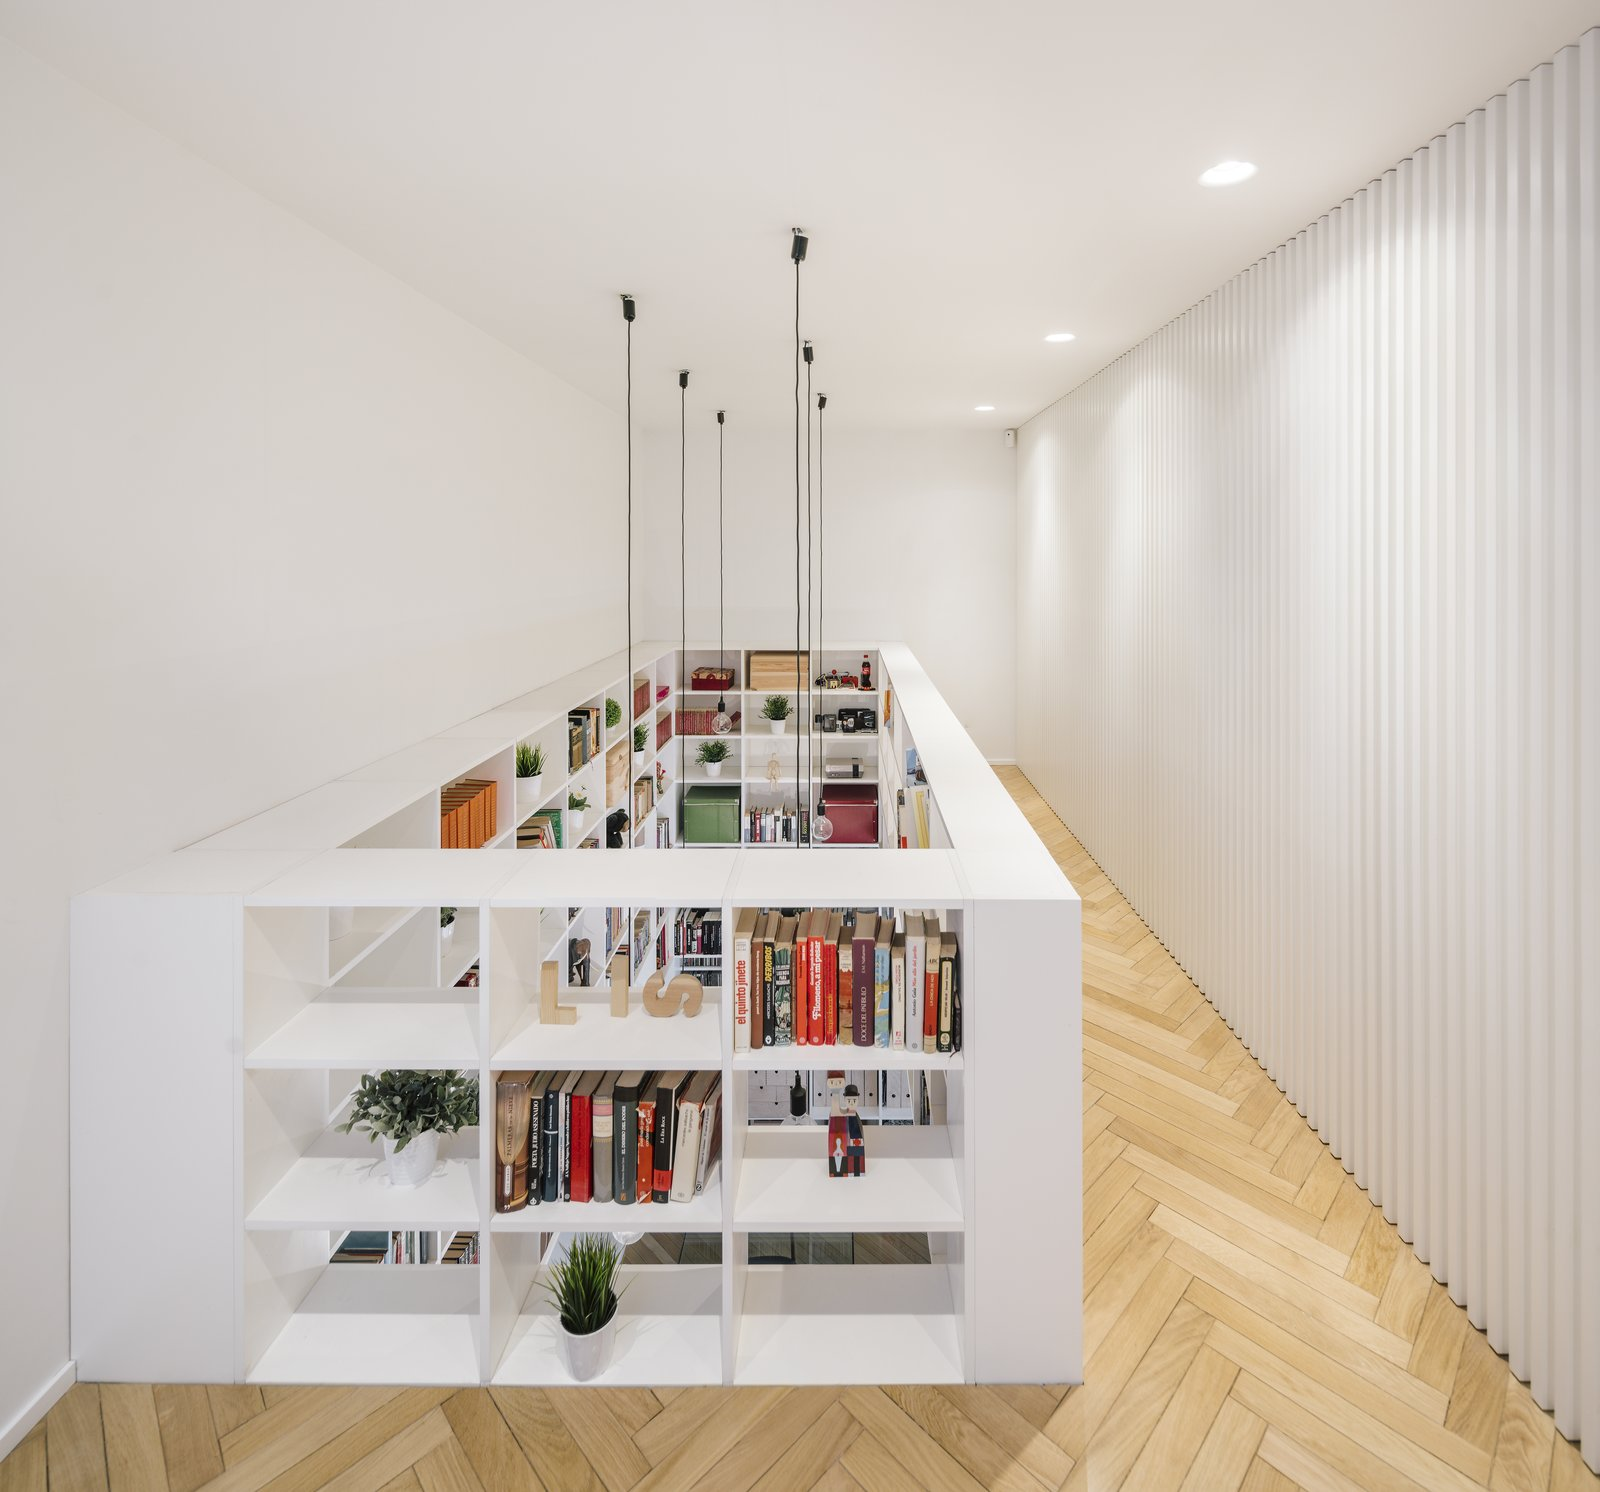 6House by Zooco Estudio bookcase and handrail